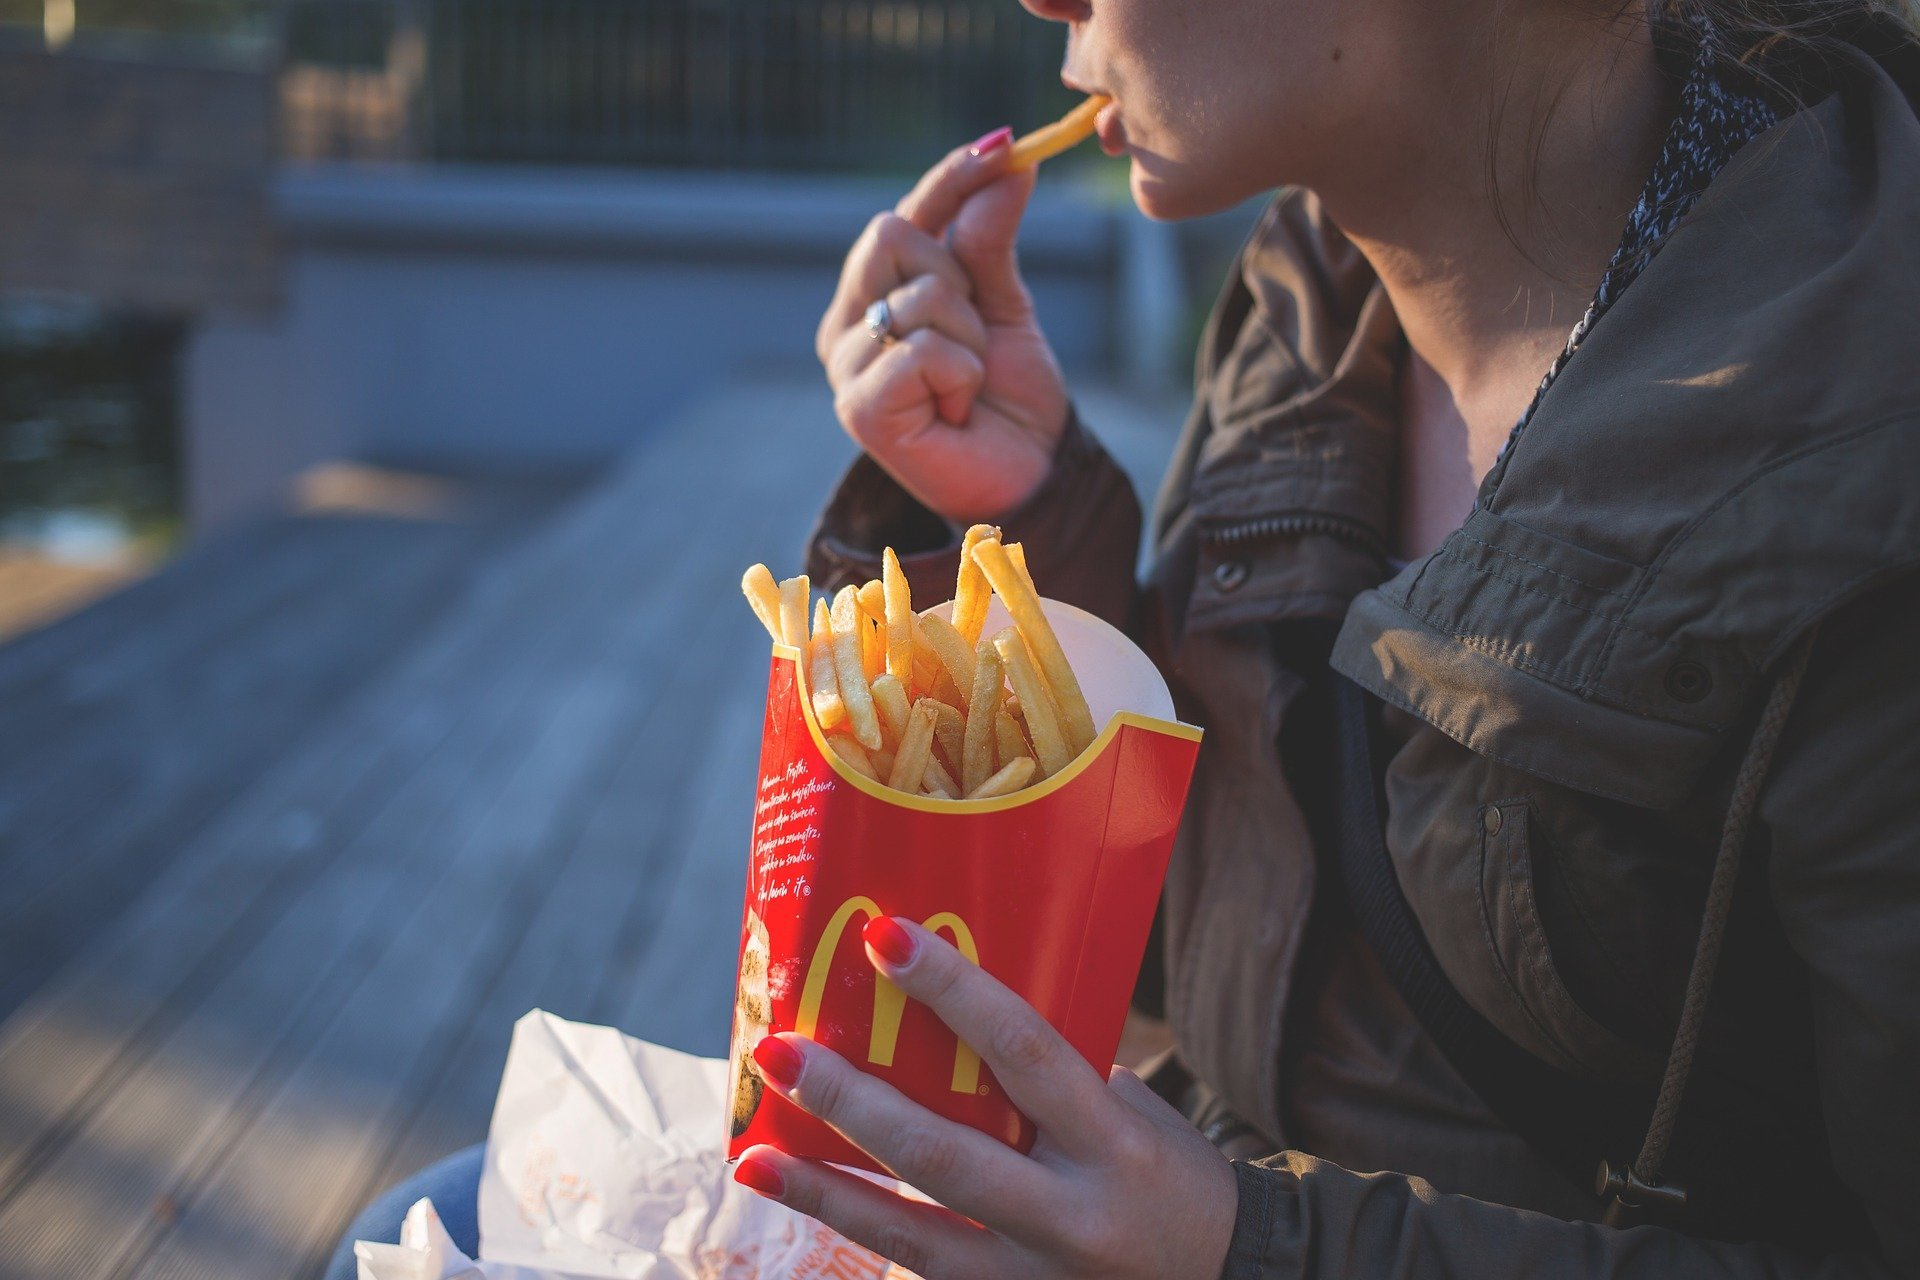 Junk food diet raises depression risk, researchers find